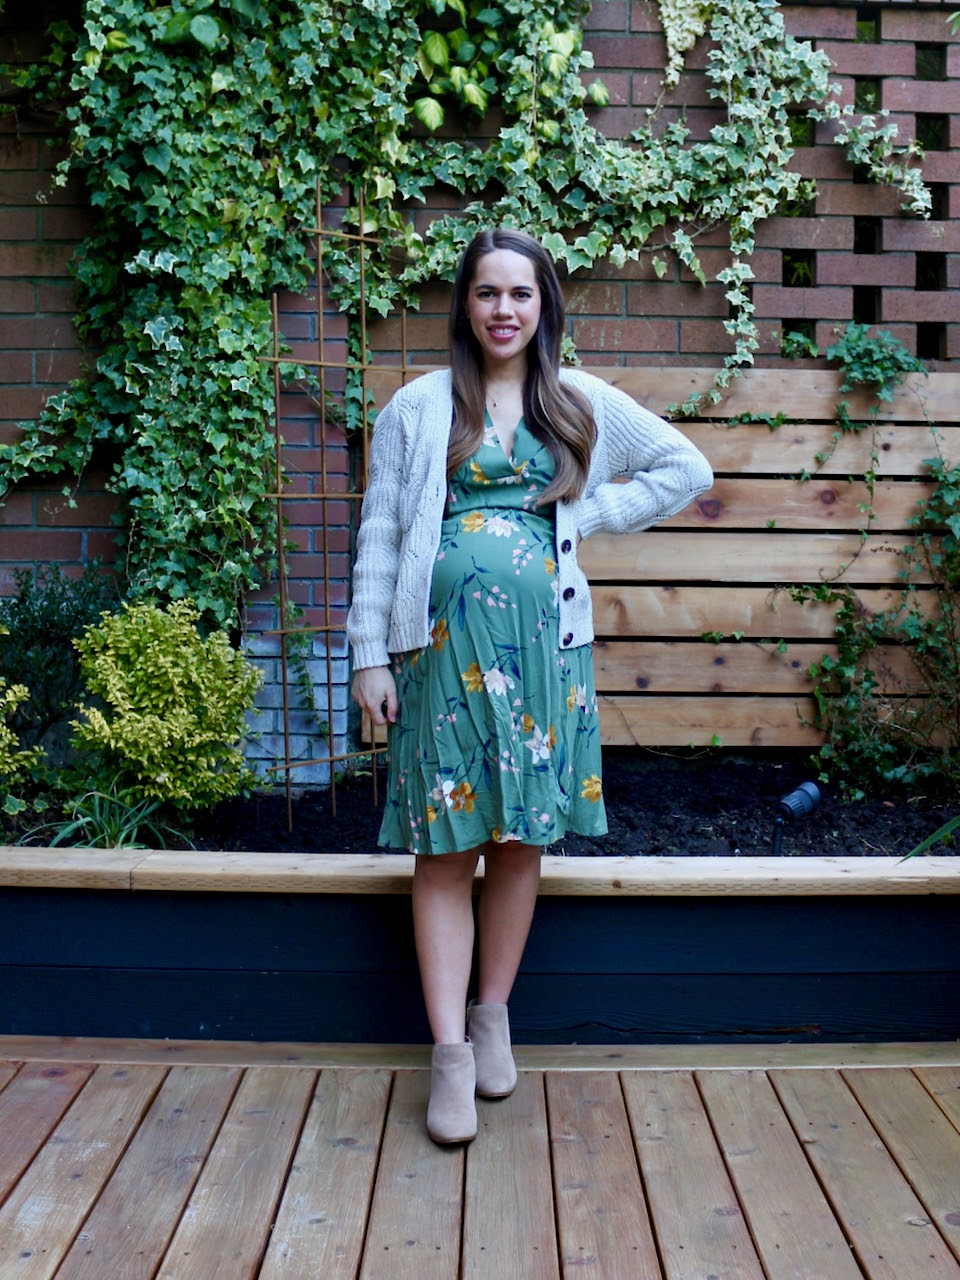 Jules in Flats - Waist-Defined Floral V-Neck Midi Dress (Business Casual Workwear on a Budget)